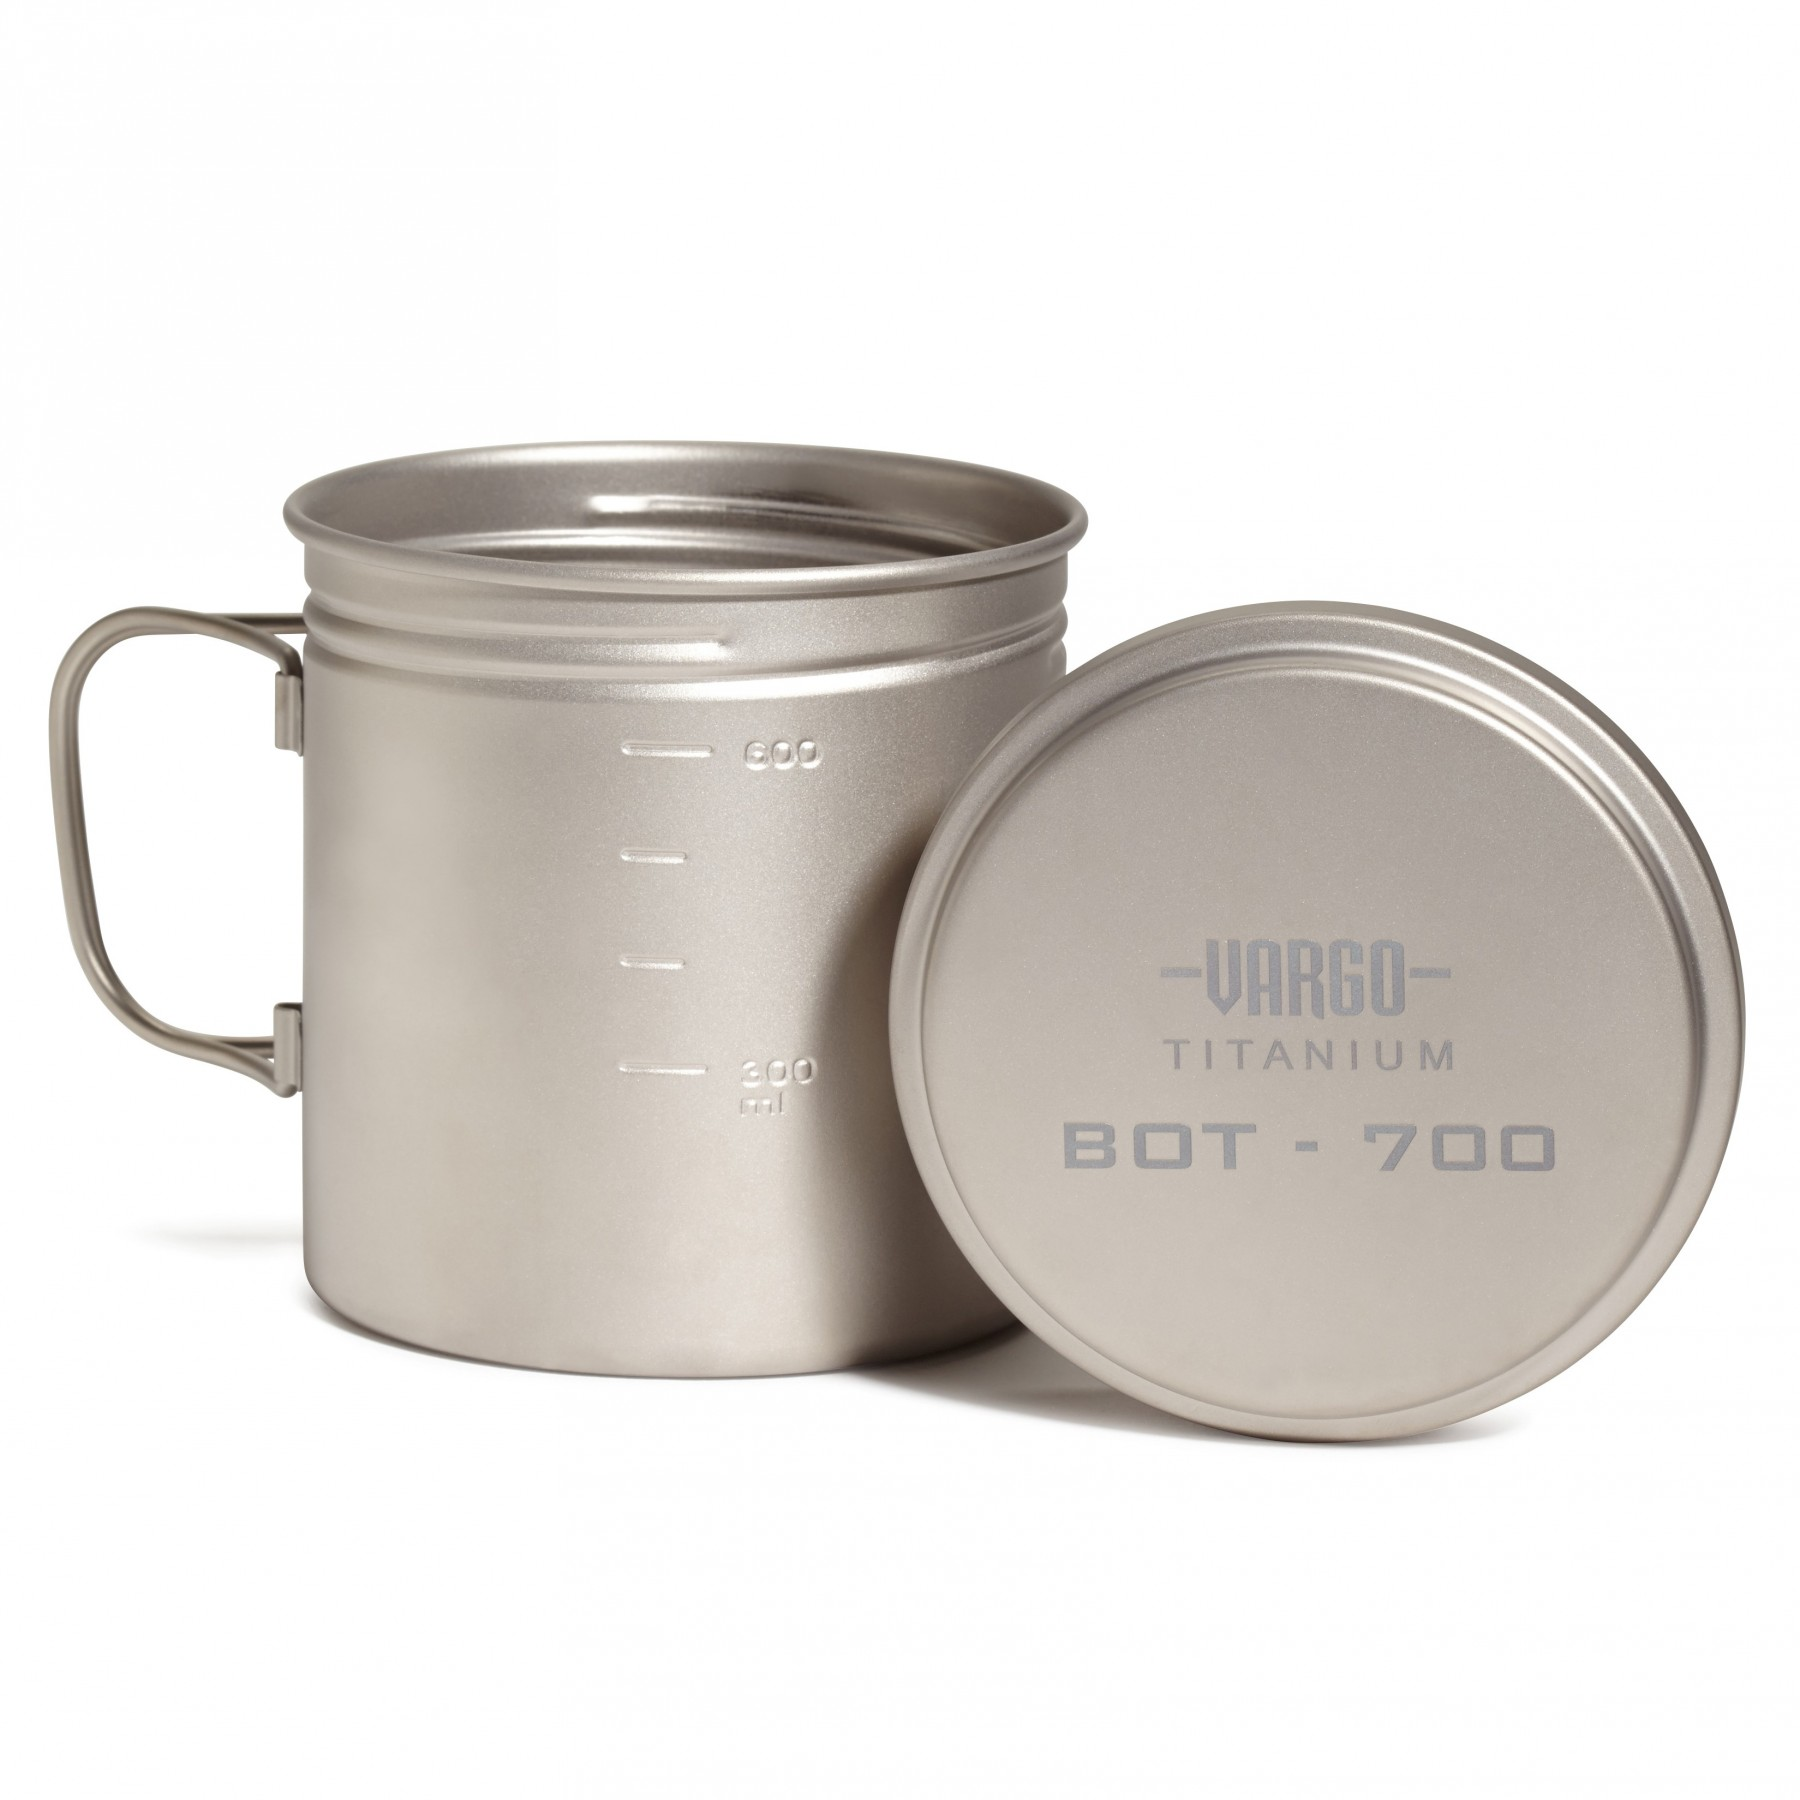 Vargo Titanium BOT Cooking Mug - 700 ml